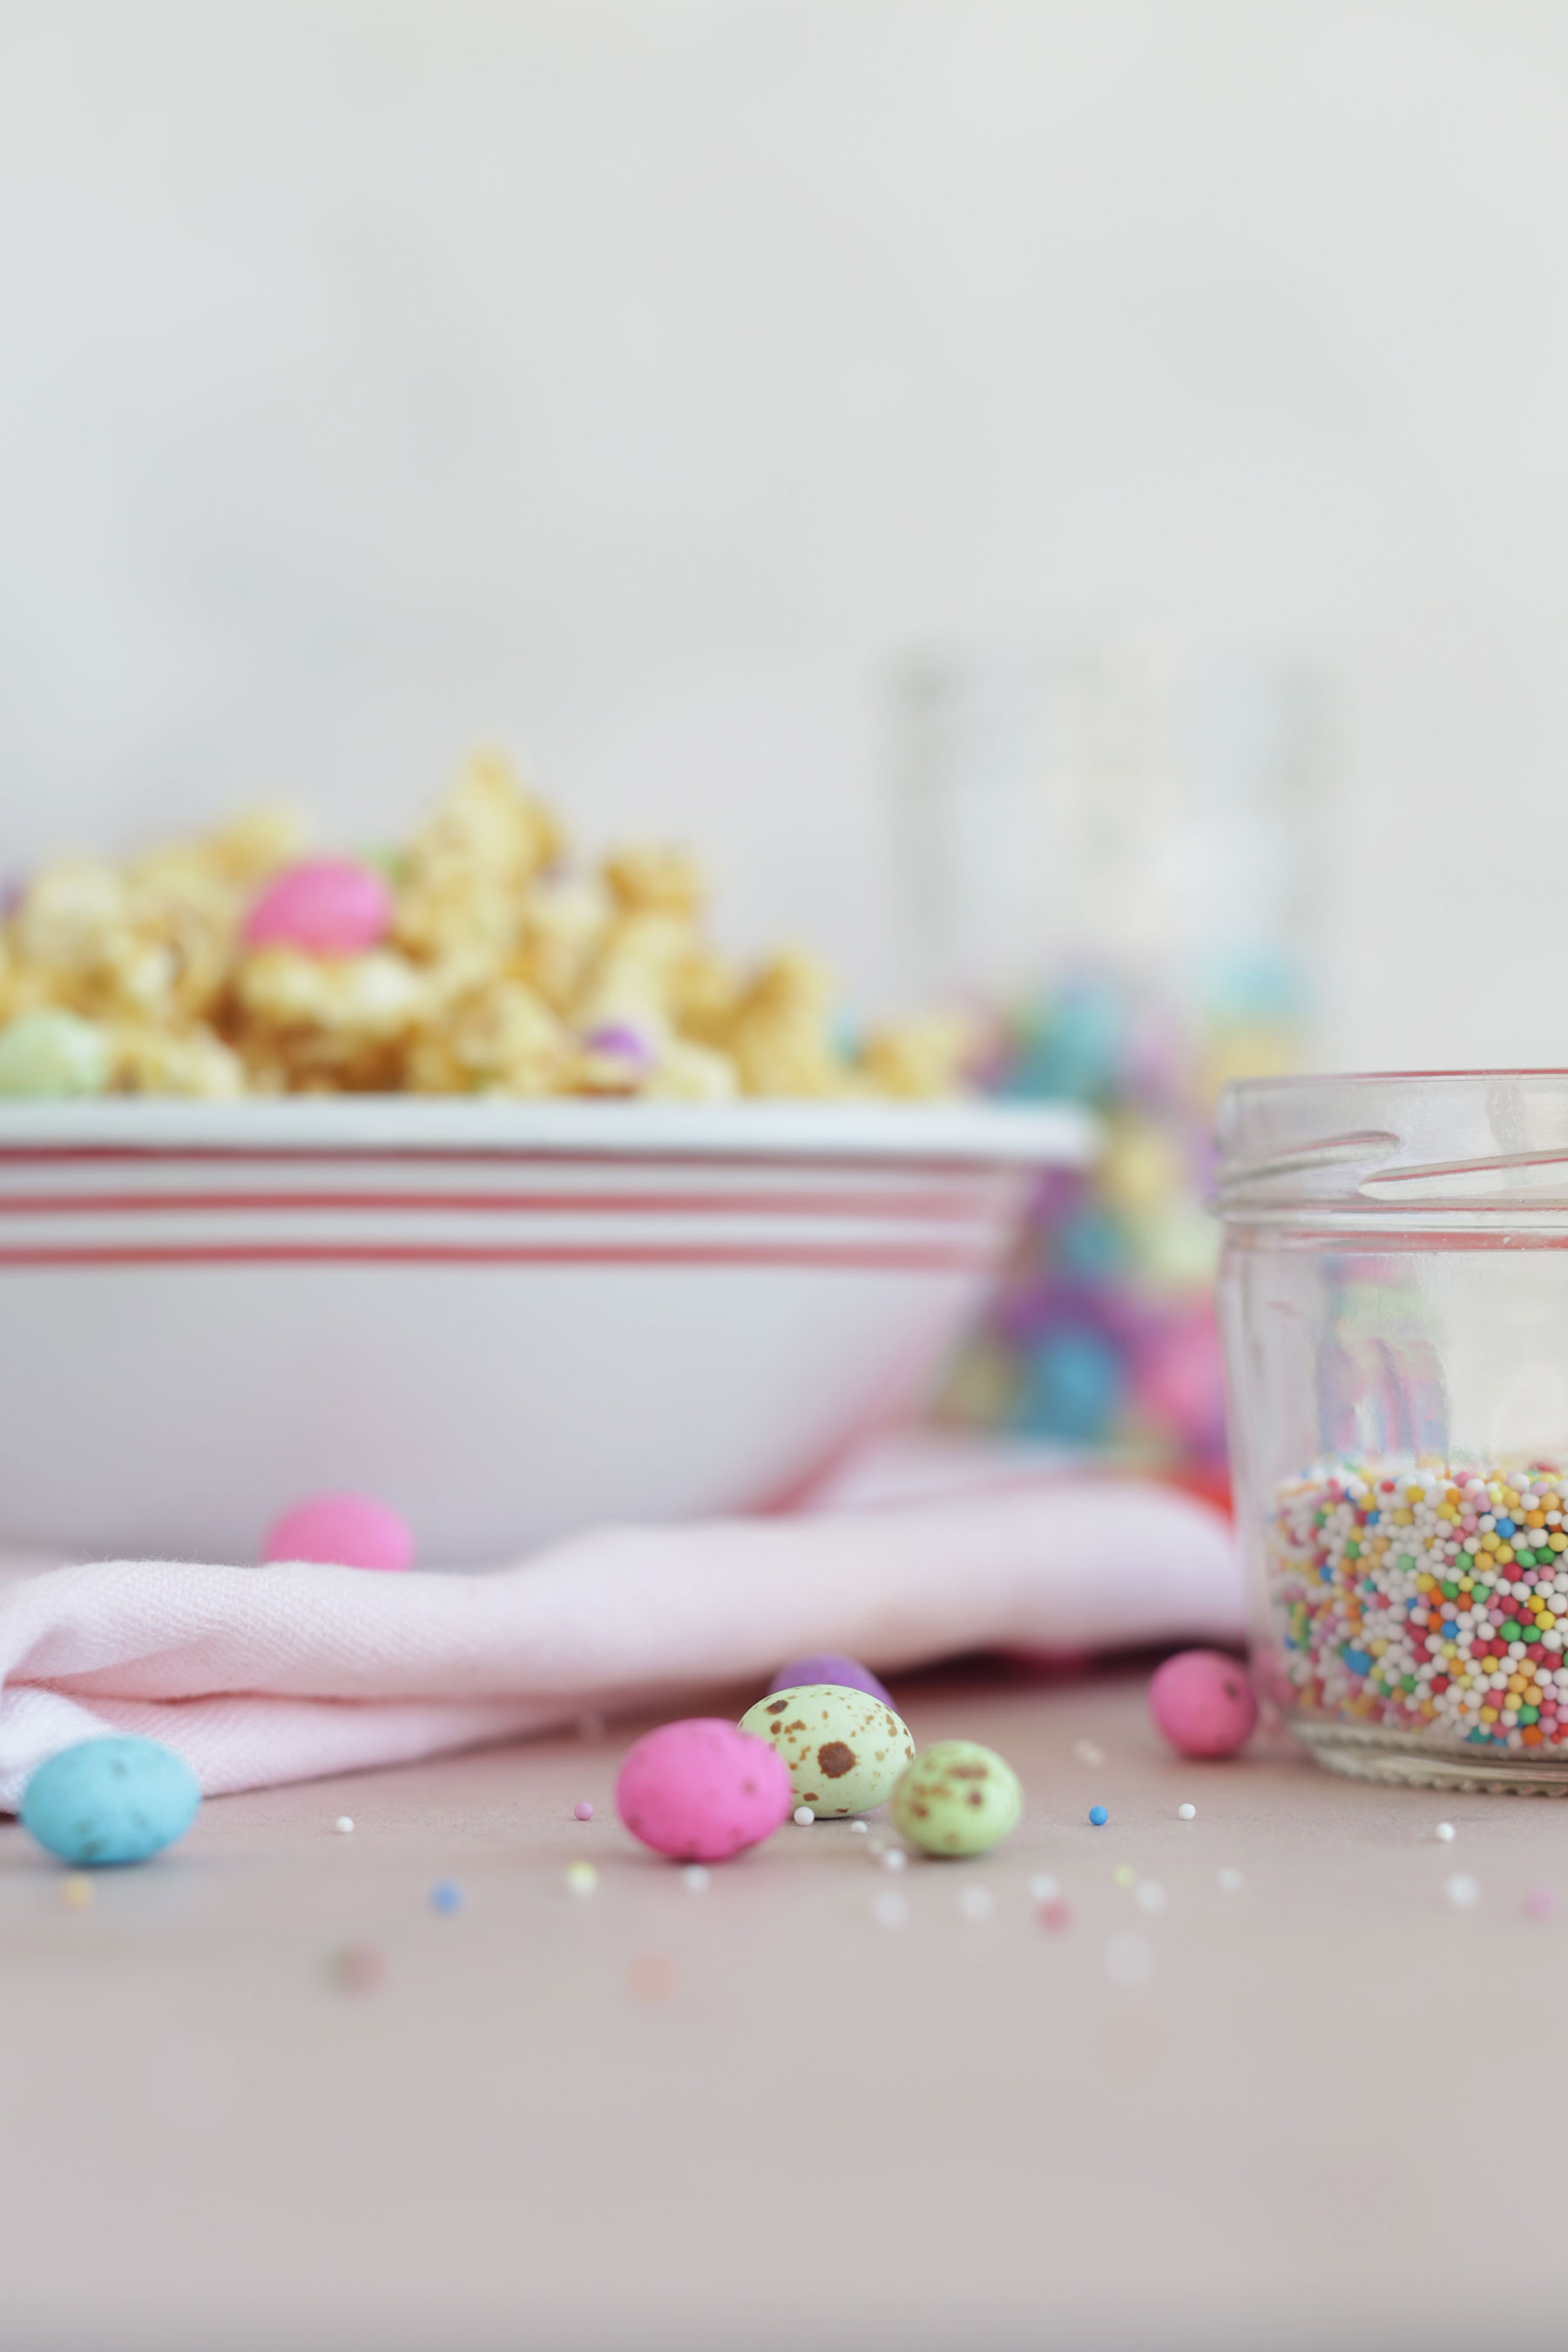 Caramel-Popcorn-with-speckled-eggs-and-sprinkles-5